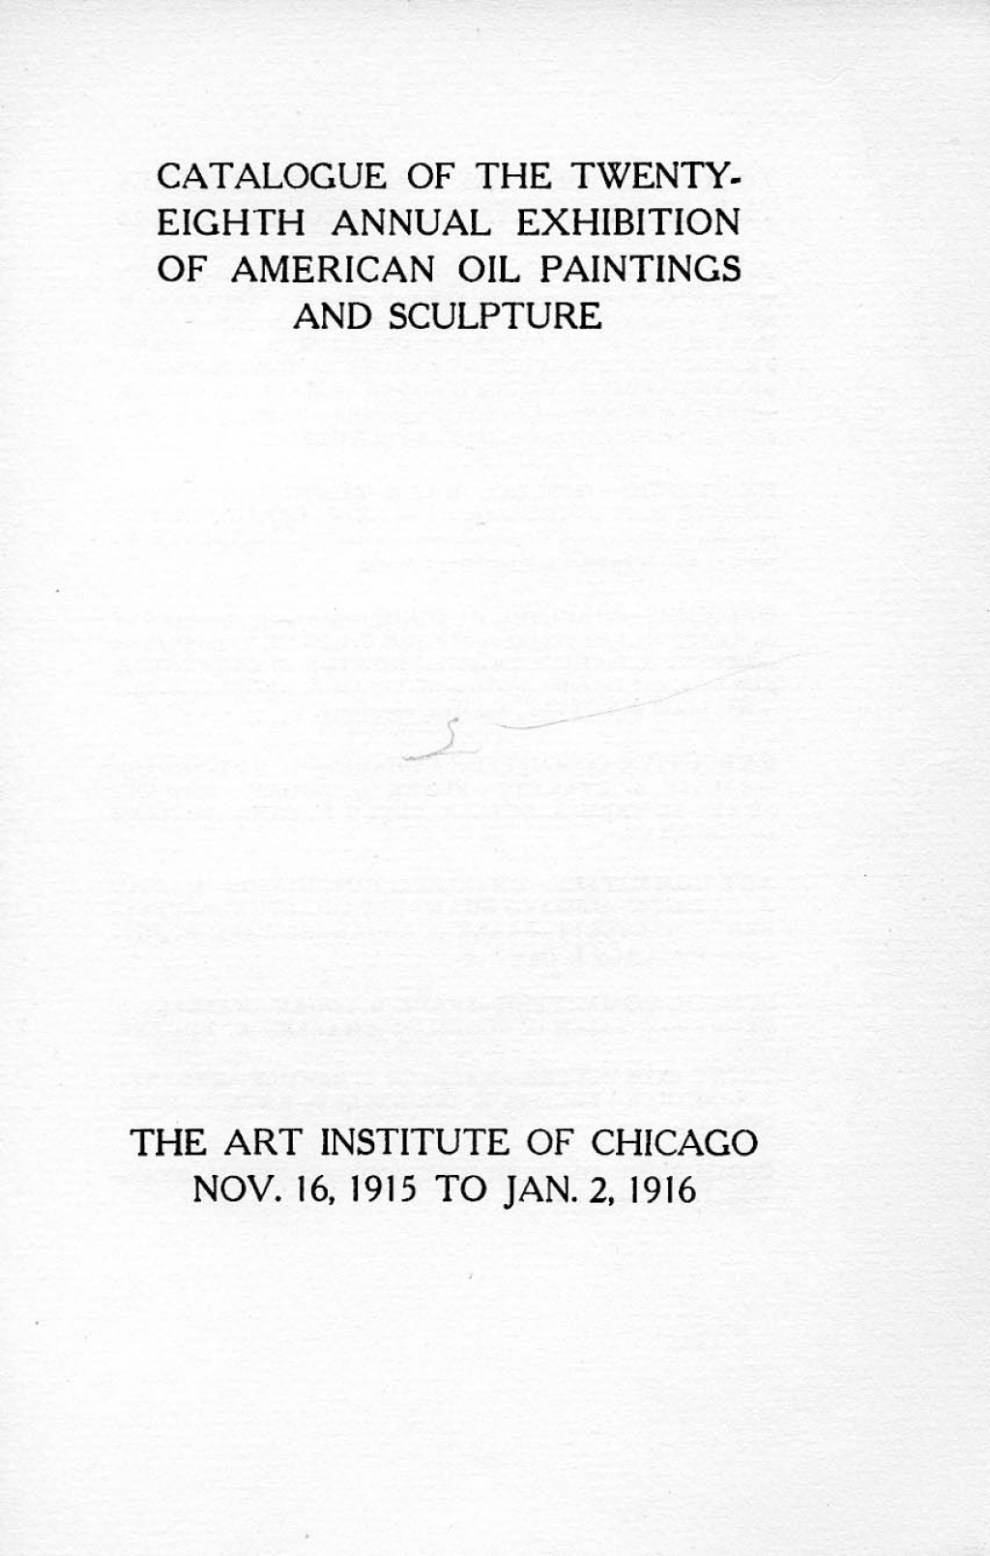 """1915 Art Institute of Chicago, Chicago, IL, """"Twenty-Eighth Annual Exhibition of American Oil Paintings and Sculpture"""", November 16, 1915 - January 2, 1916"""